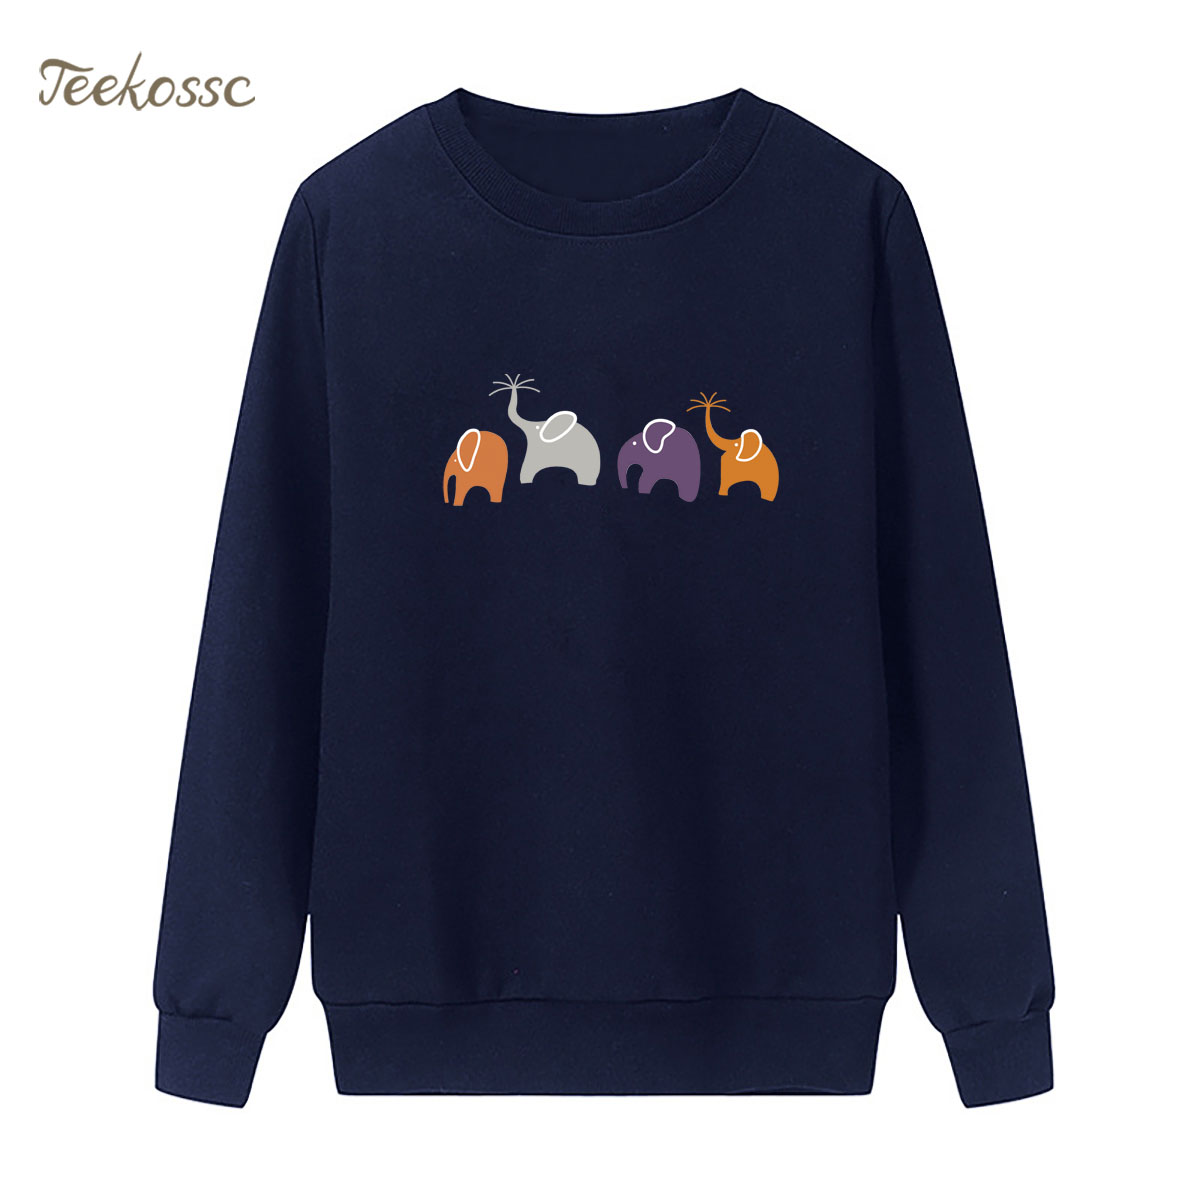 Four Elephants Sweatshirt Cute Hoodie 2018 New Design Winter Autumn Women Lasdies Pullover Fleece Warm Loose Casual Streetwear